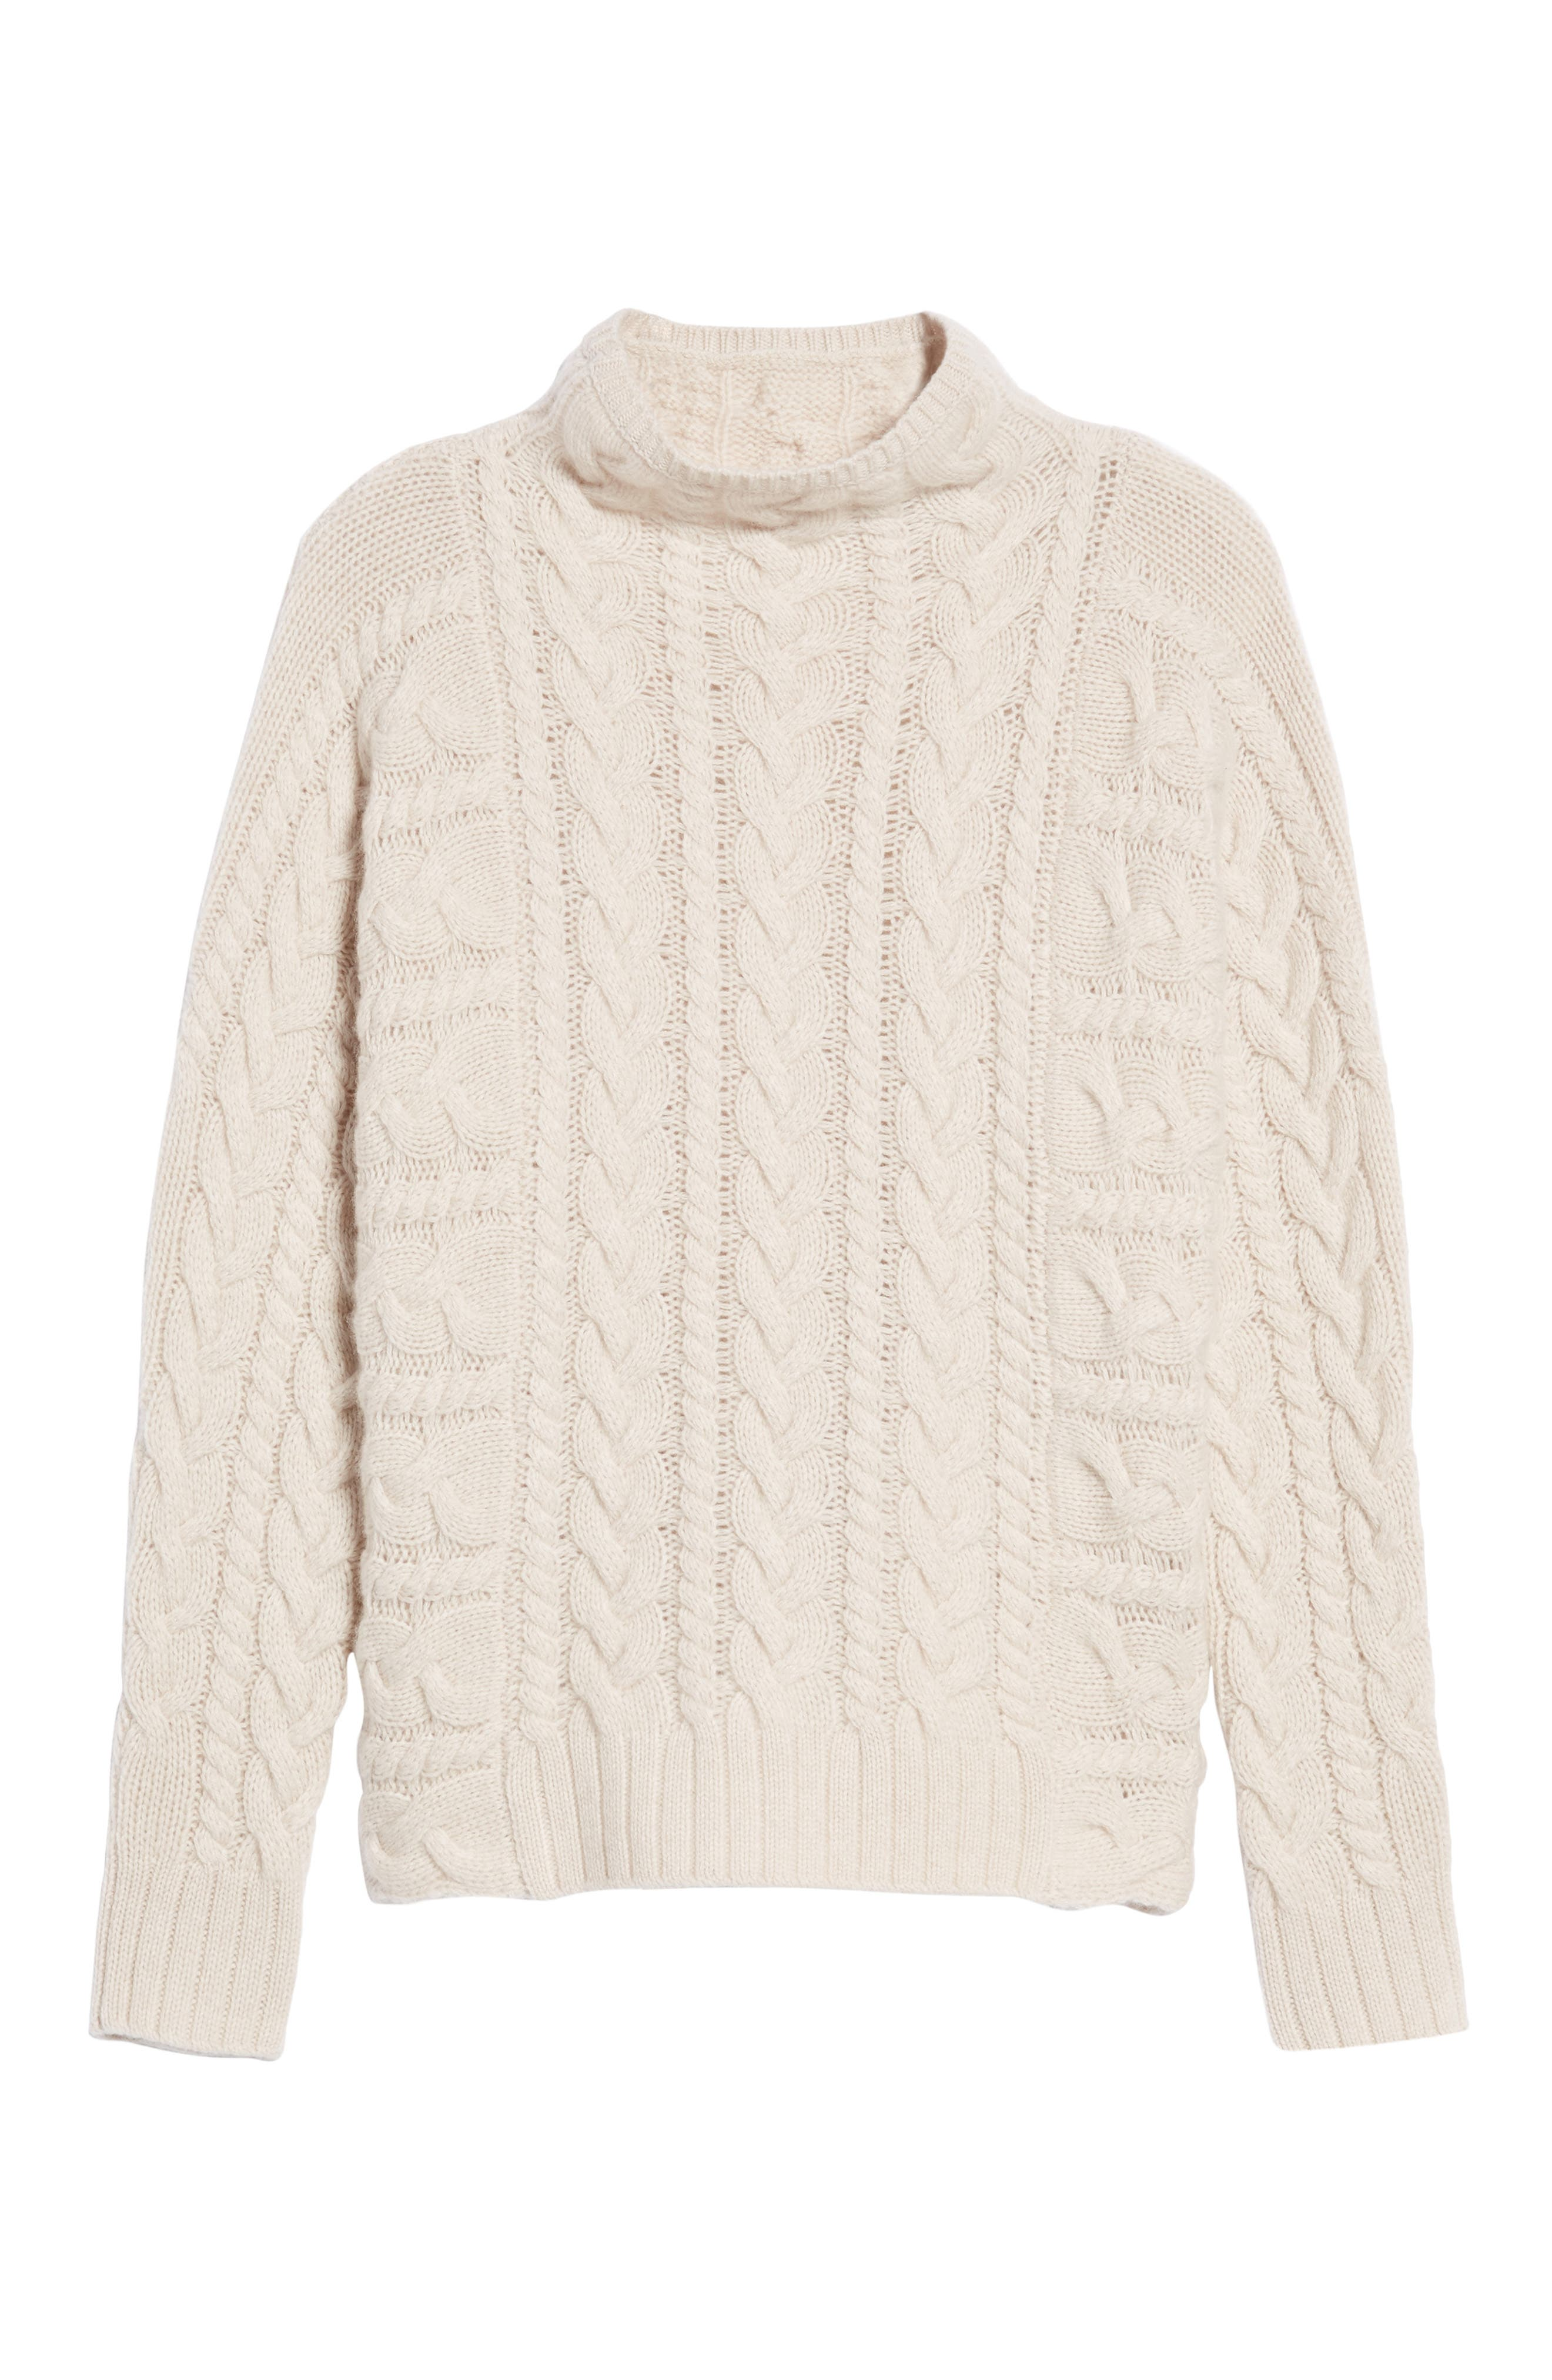 Cashmere Cable Sweater,                             Alternate thumbnail 6, color,                             Beige Pumice Heather